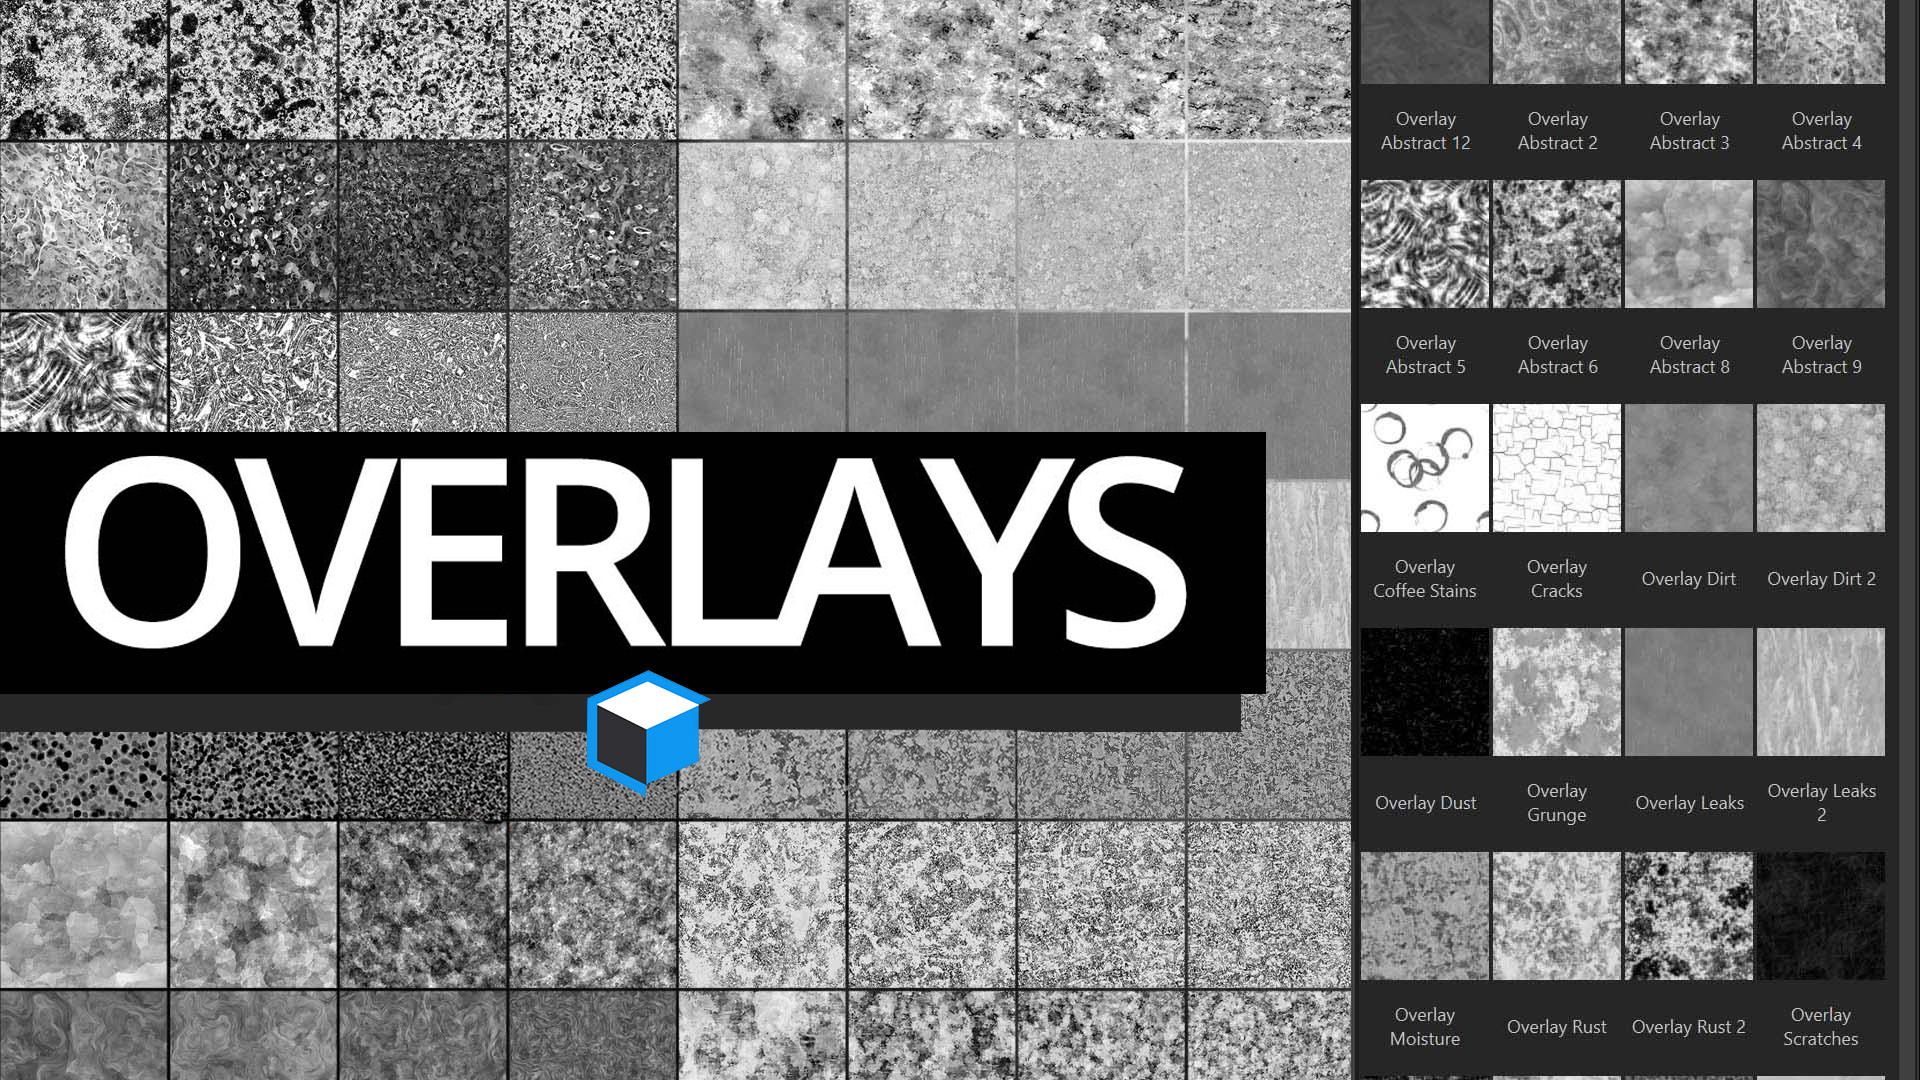 Overlays - New Category!(11th February 2019)